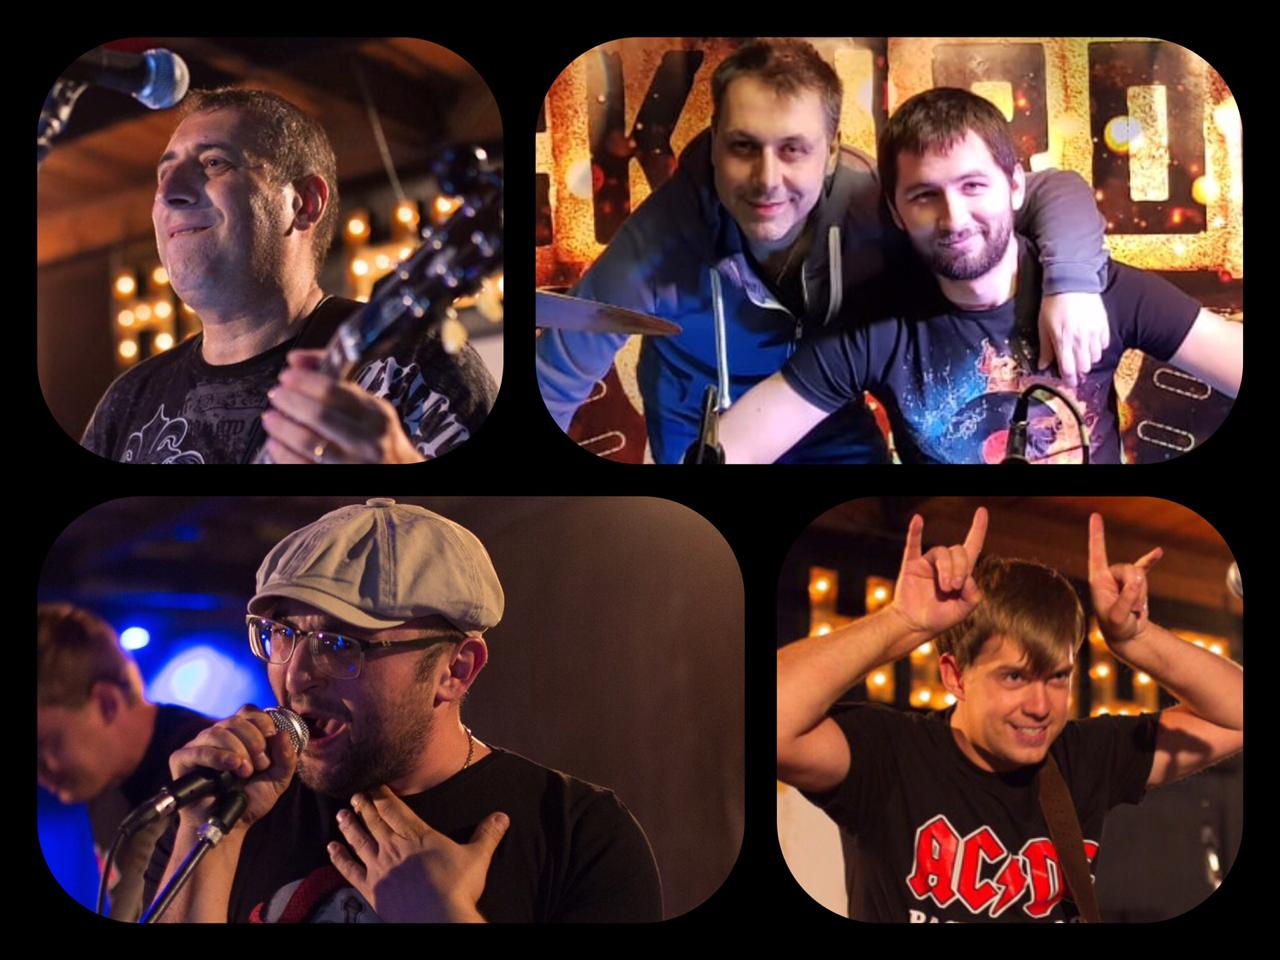 Moscow Rock Revival / АС/DC tribute show